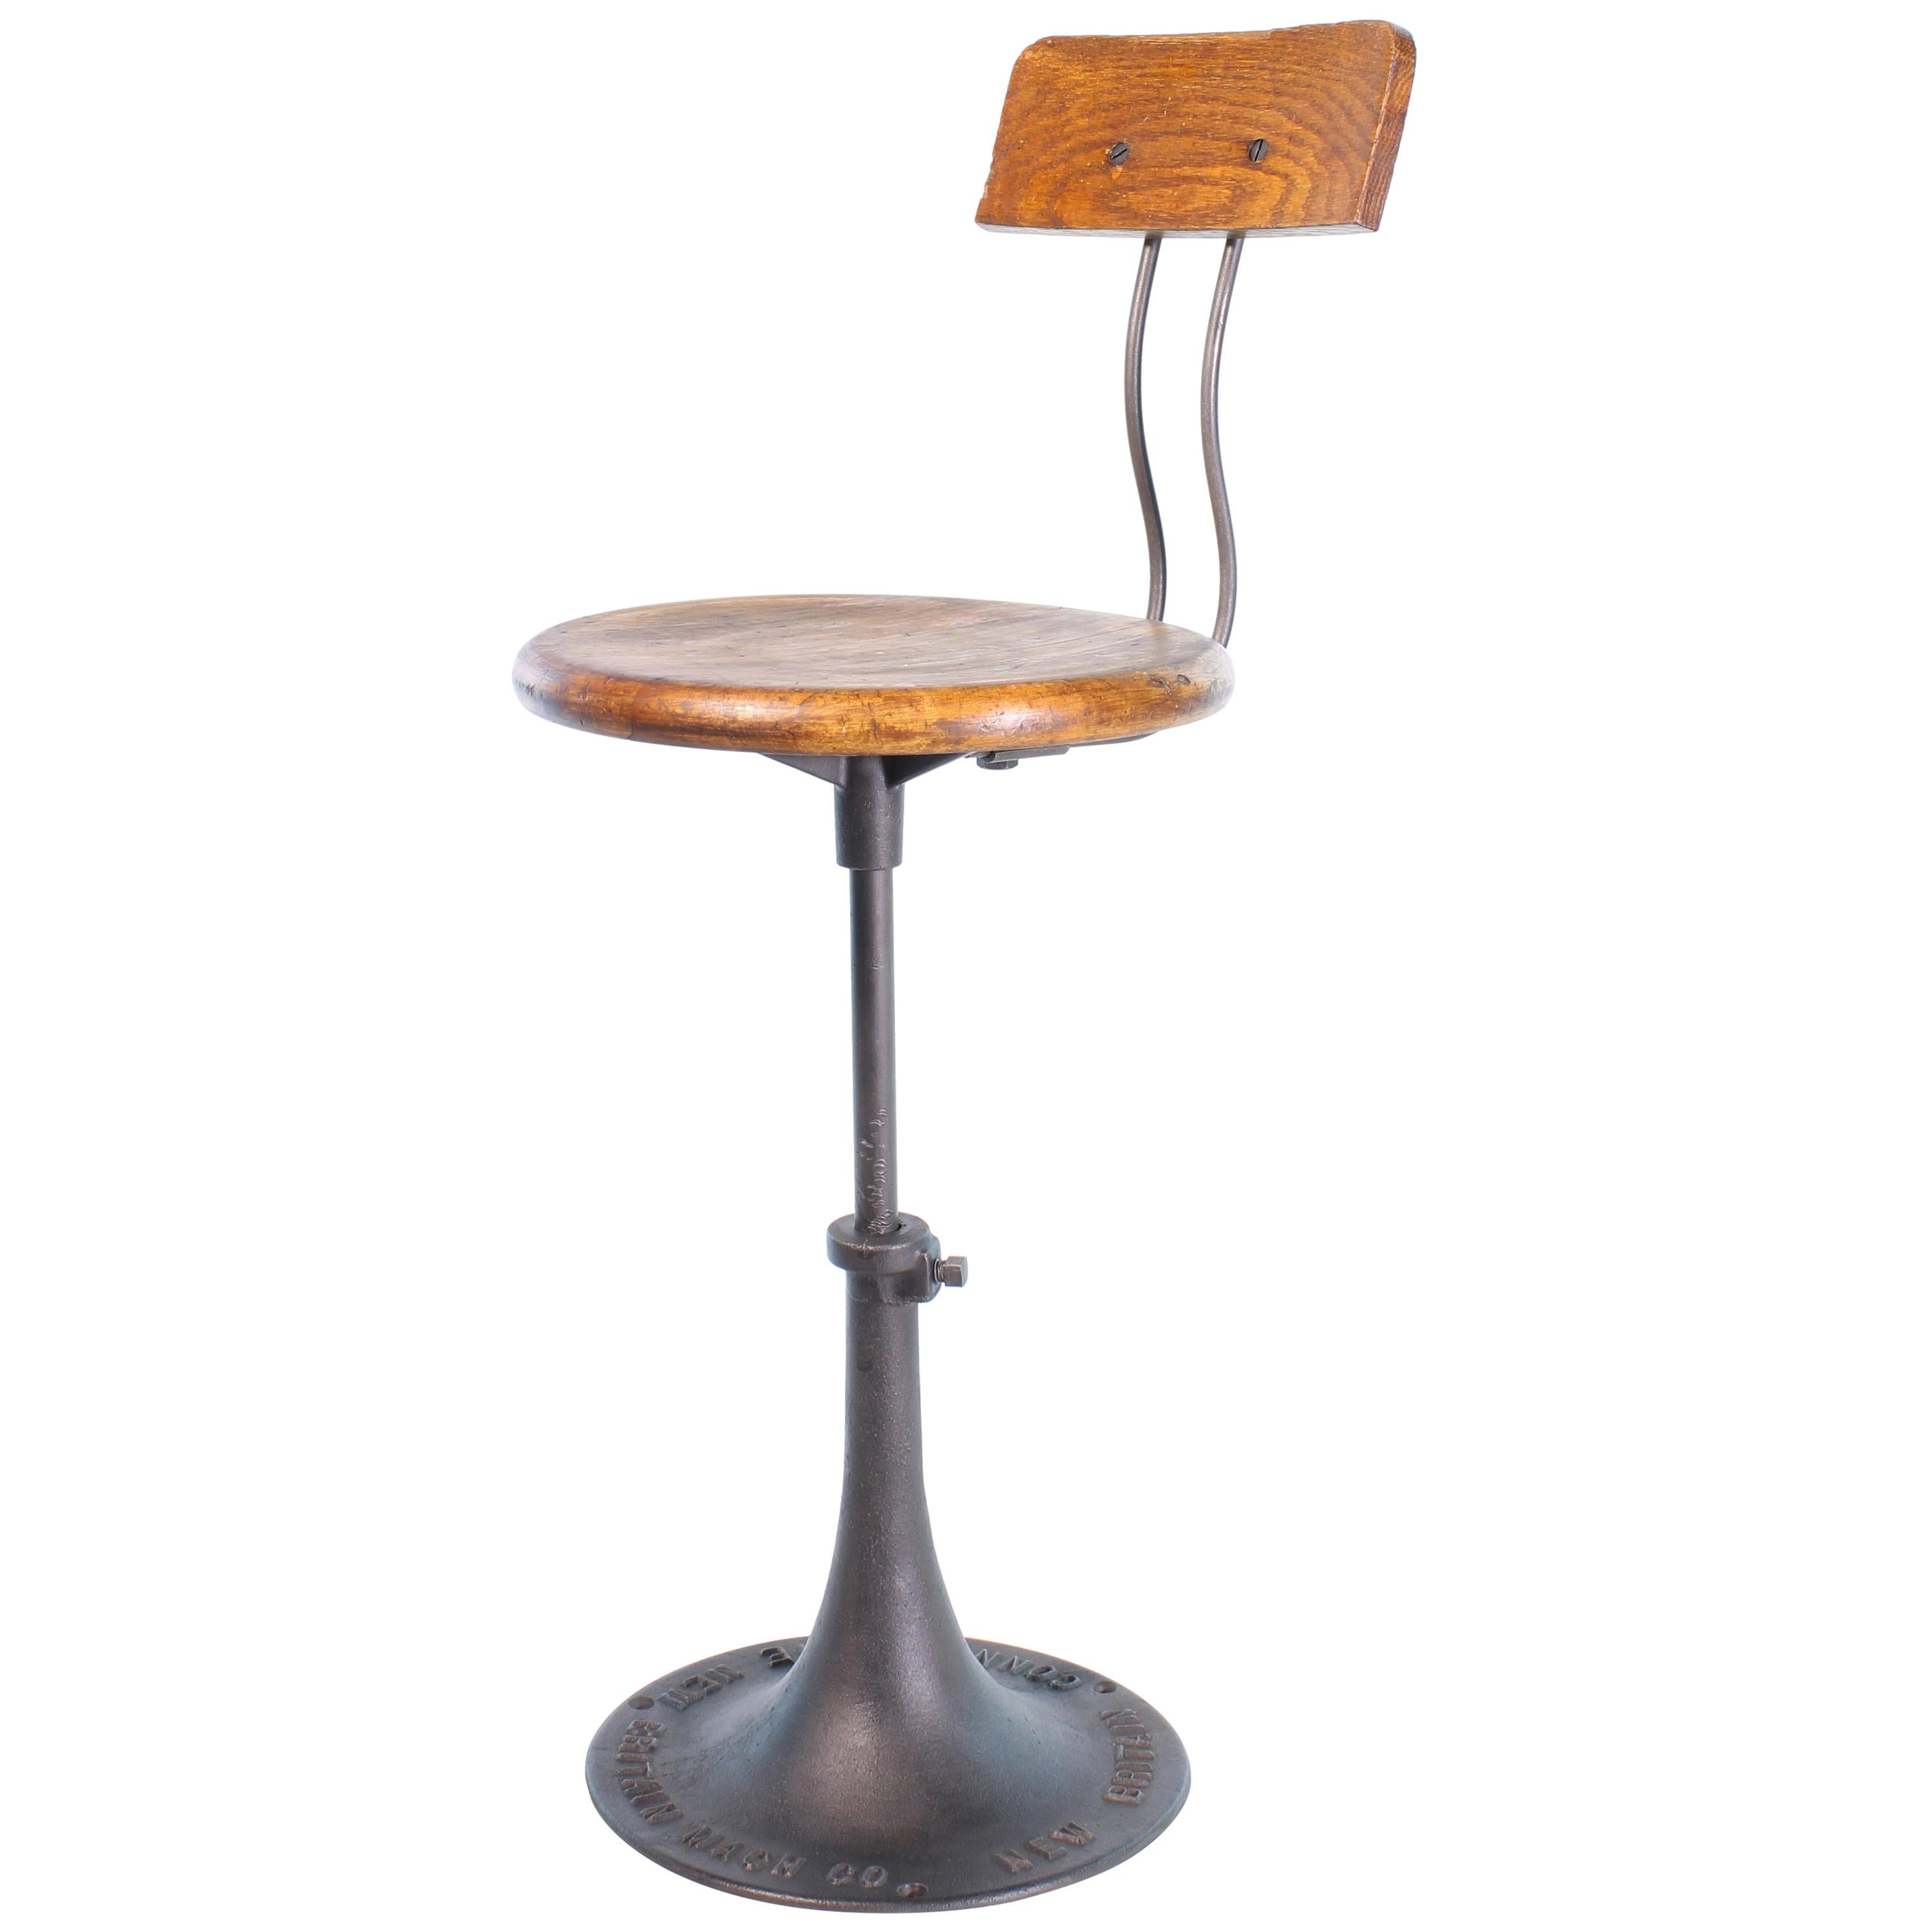 Incroyable Connecticut Factory Adjustable Stool With Back For Sale